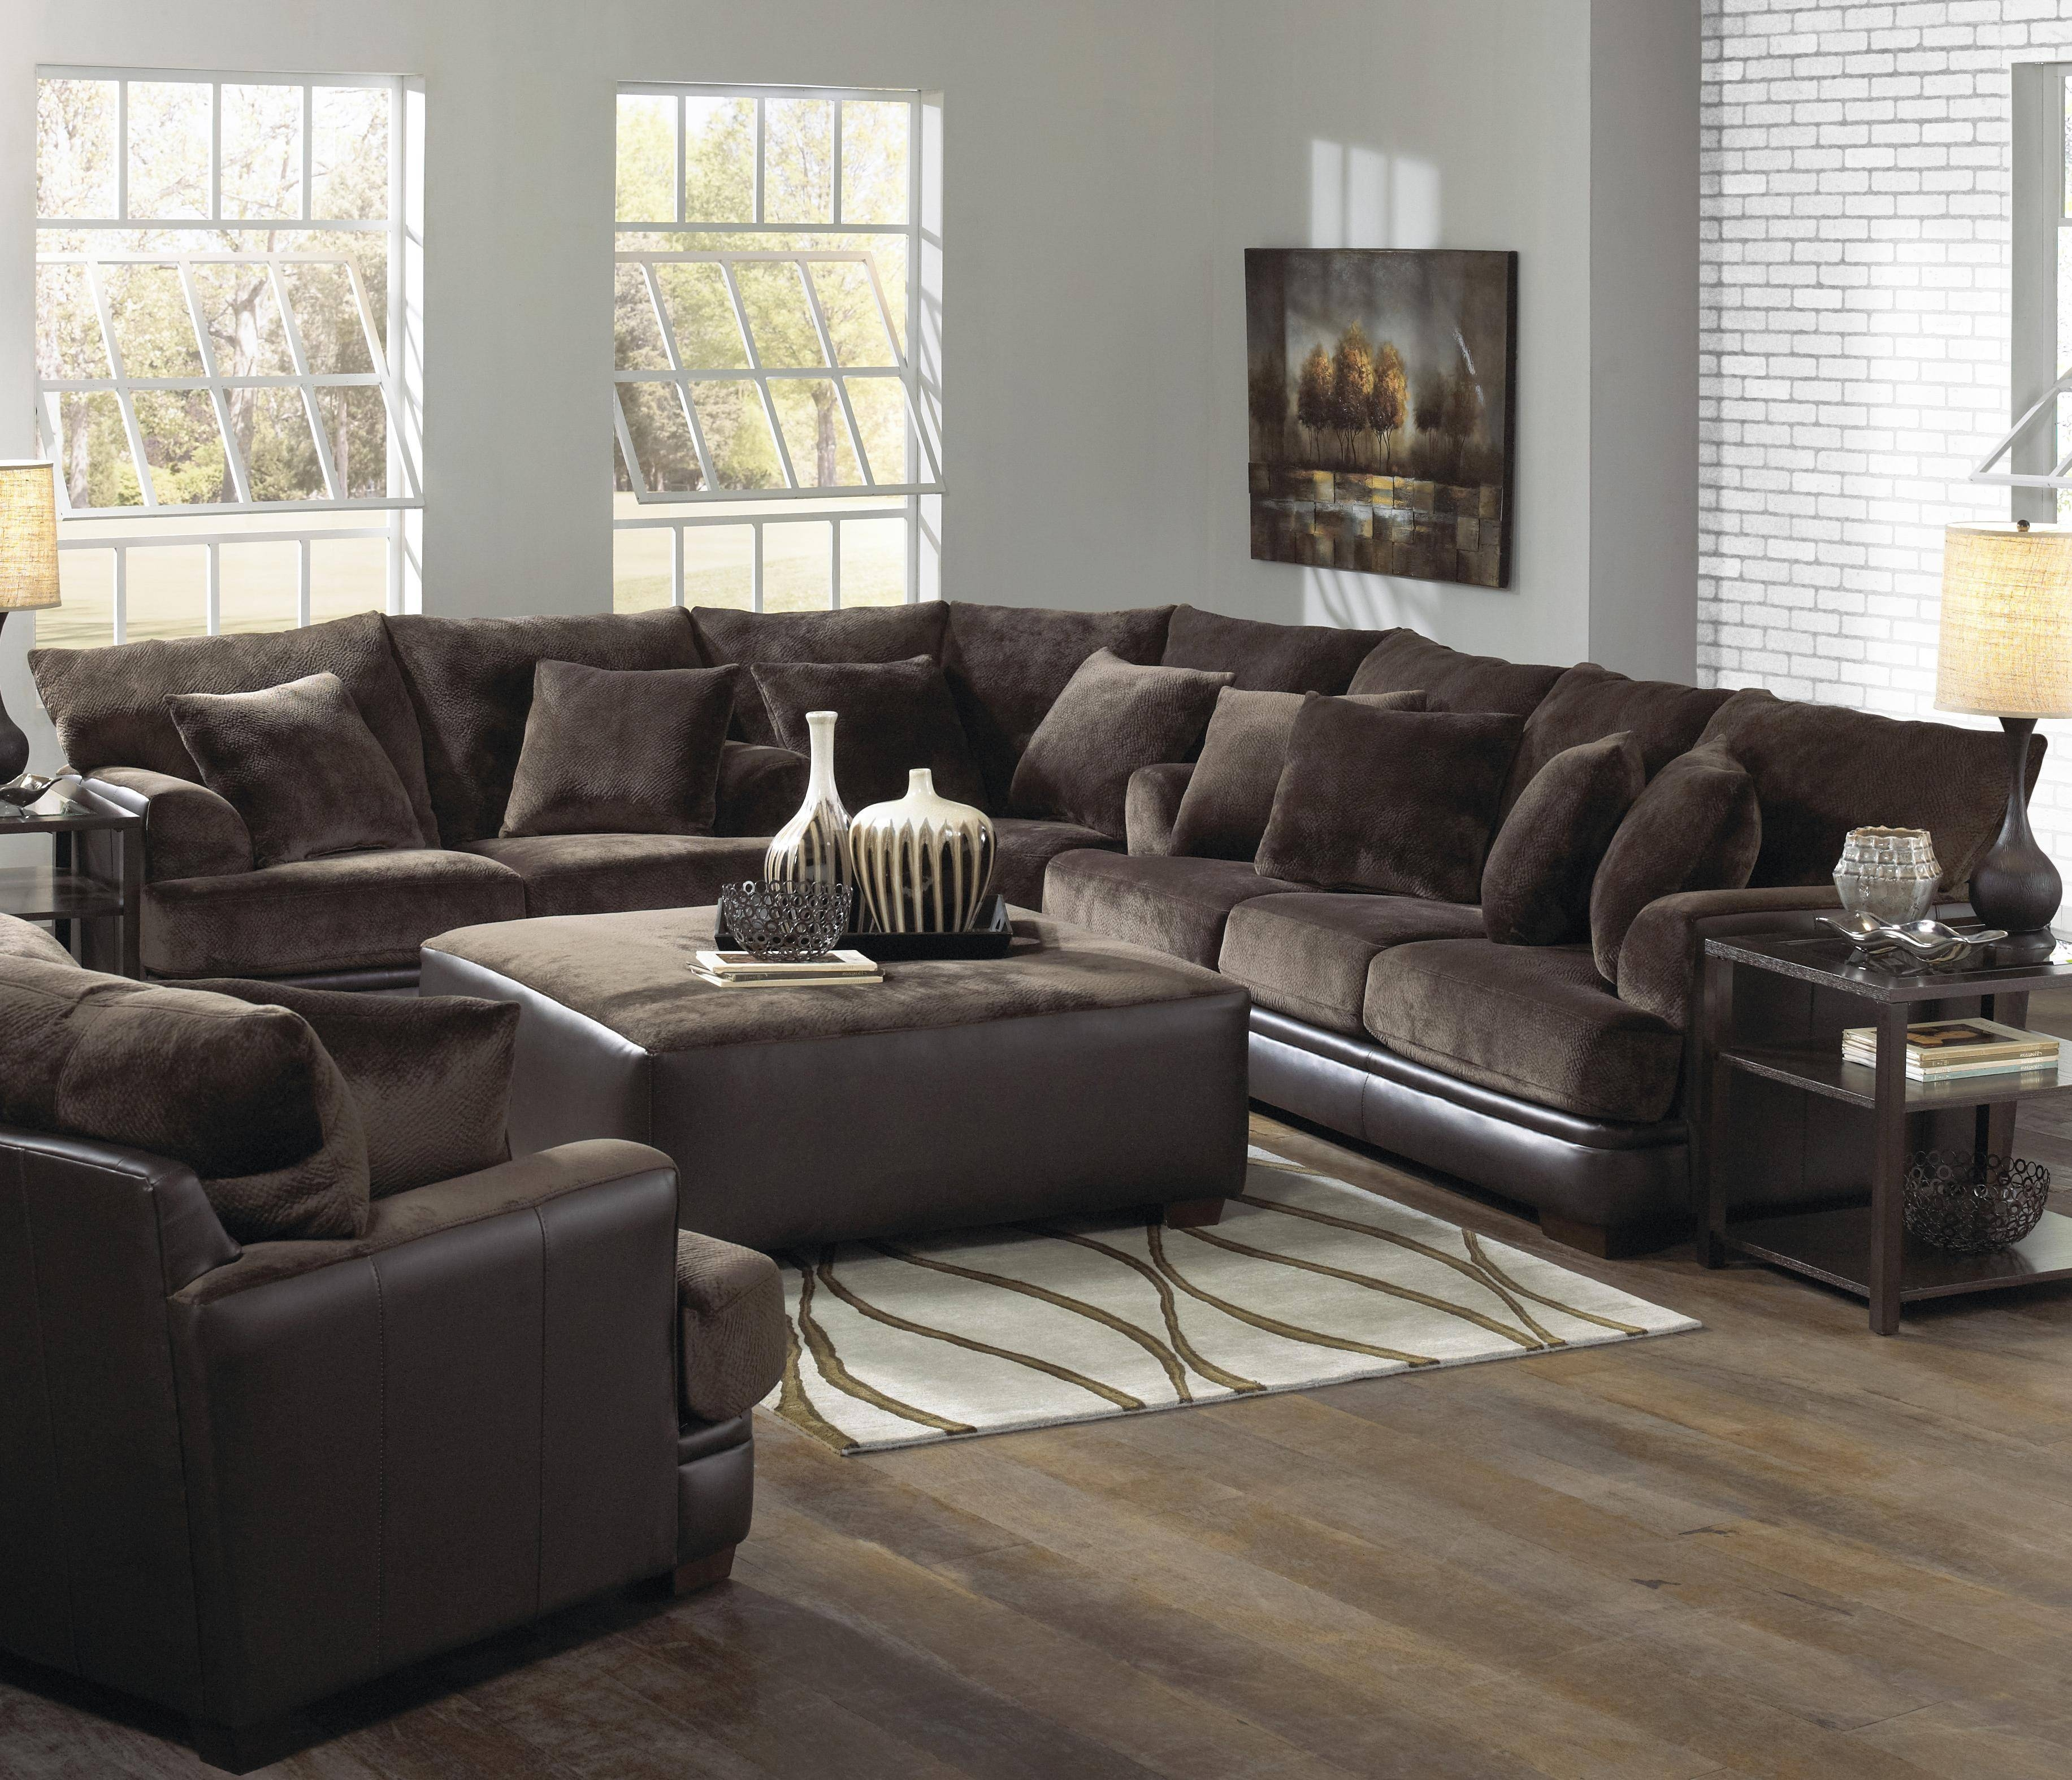 Furniture: Oversized Sectional Oversized Sofas Large Sectional Sofas intended for Sofas And Sectionals (Image 15 of 30)